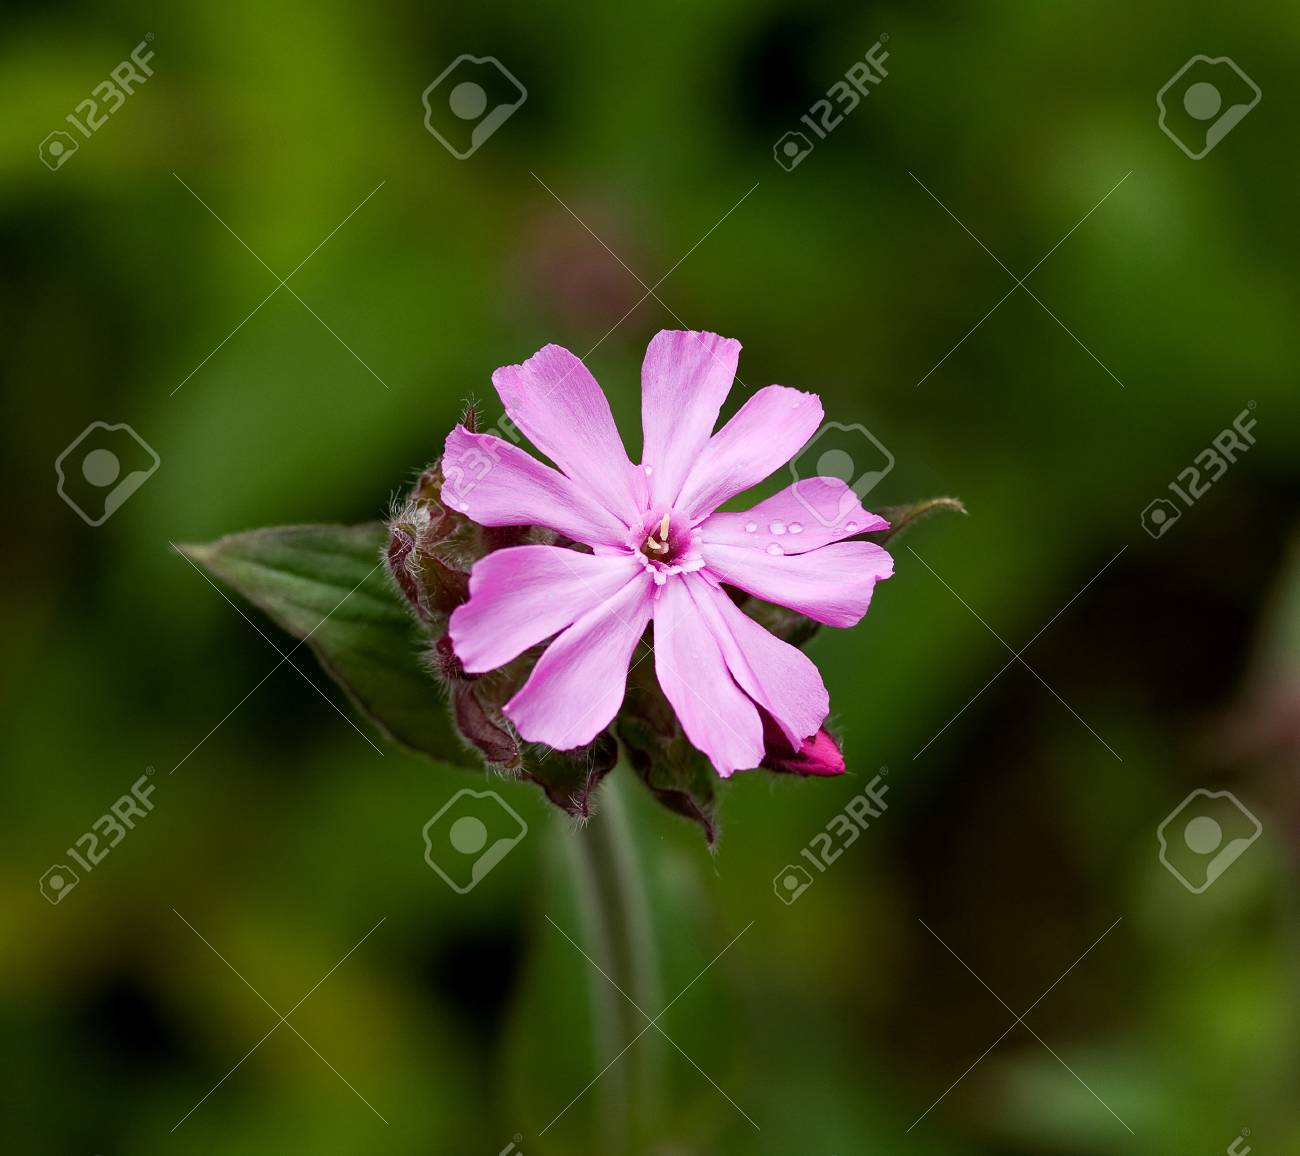 Wild Flower Pink Red Campion Detail Against Green Background Stock